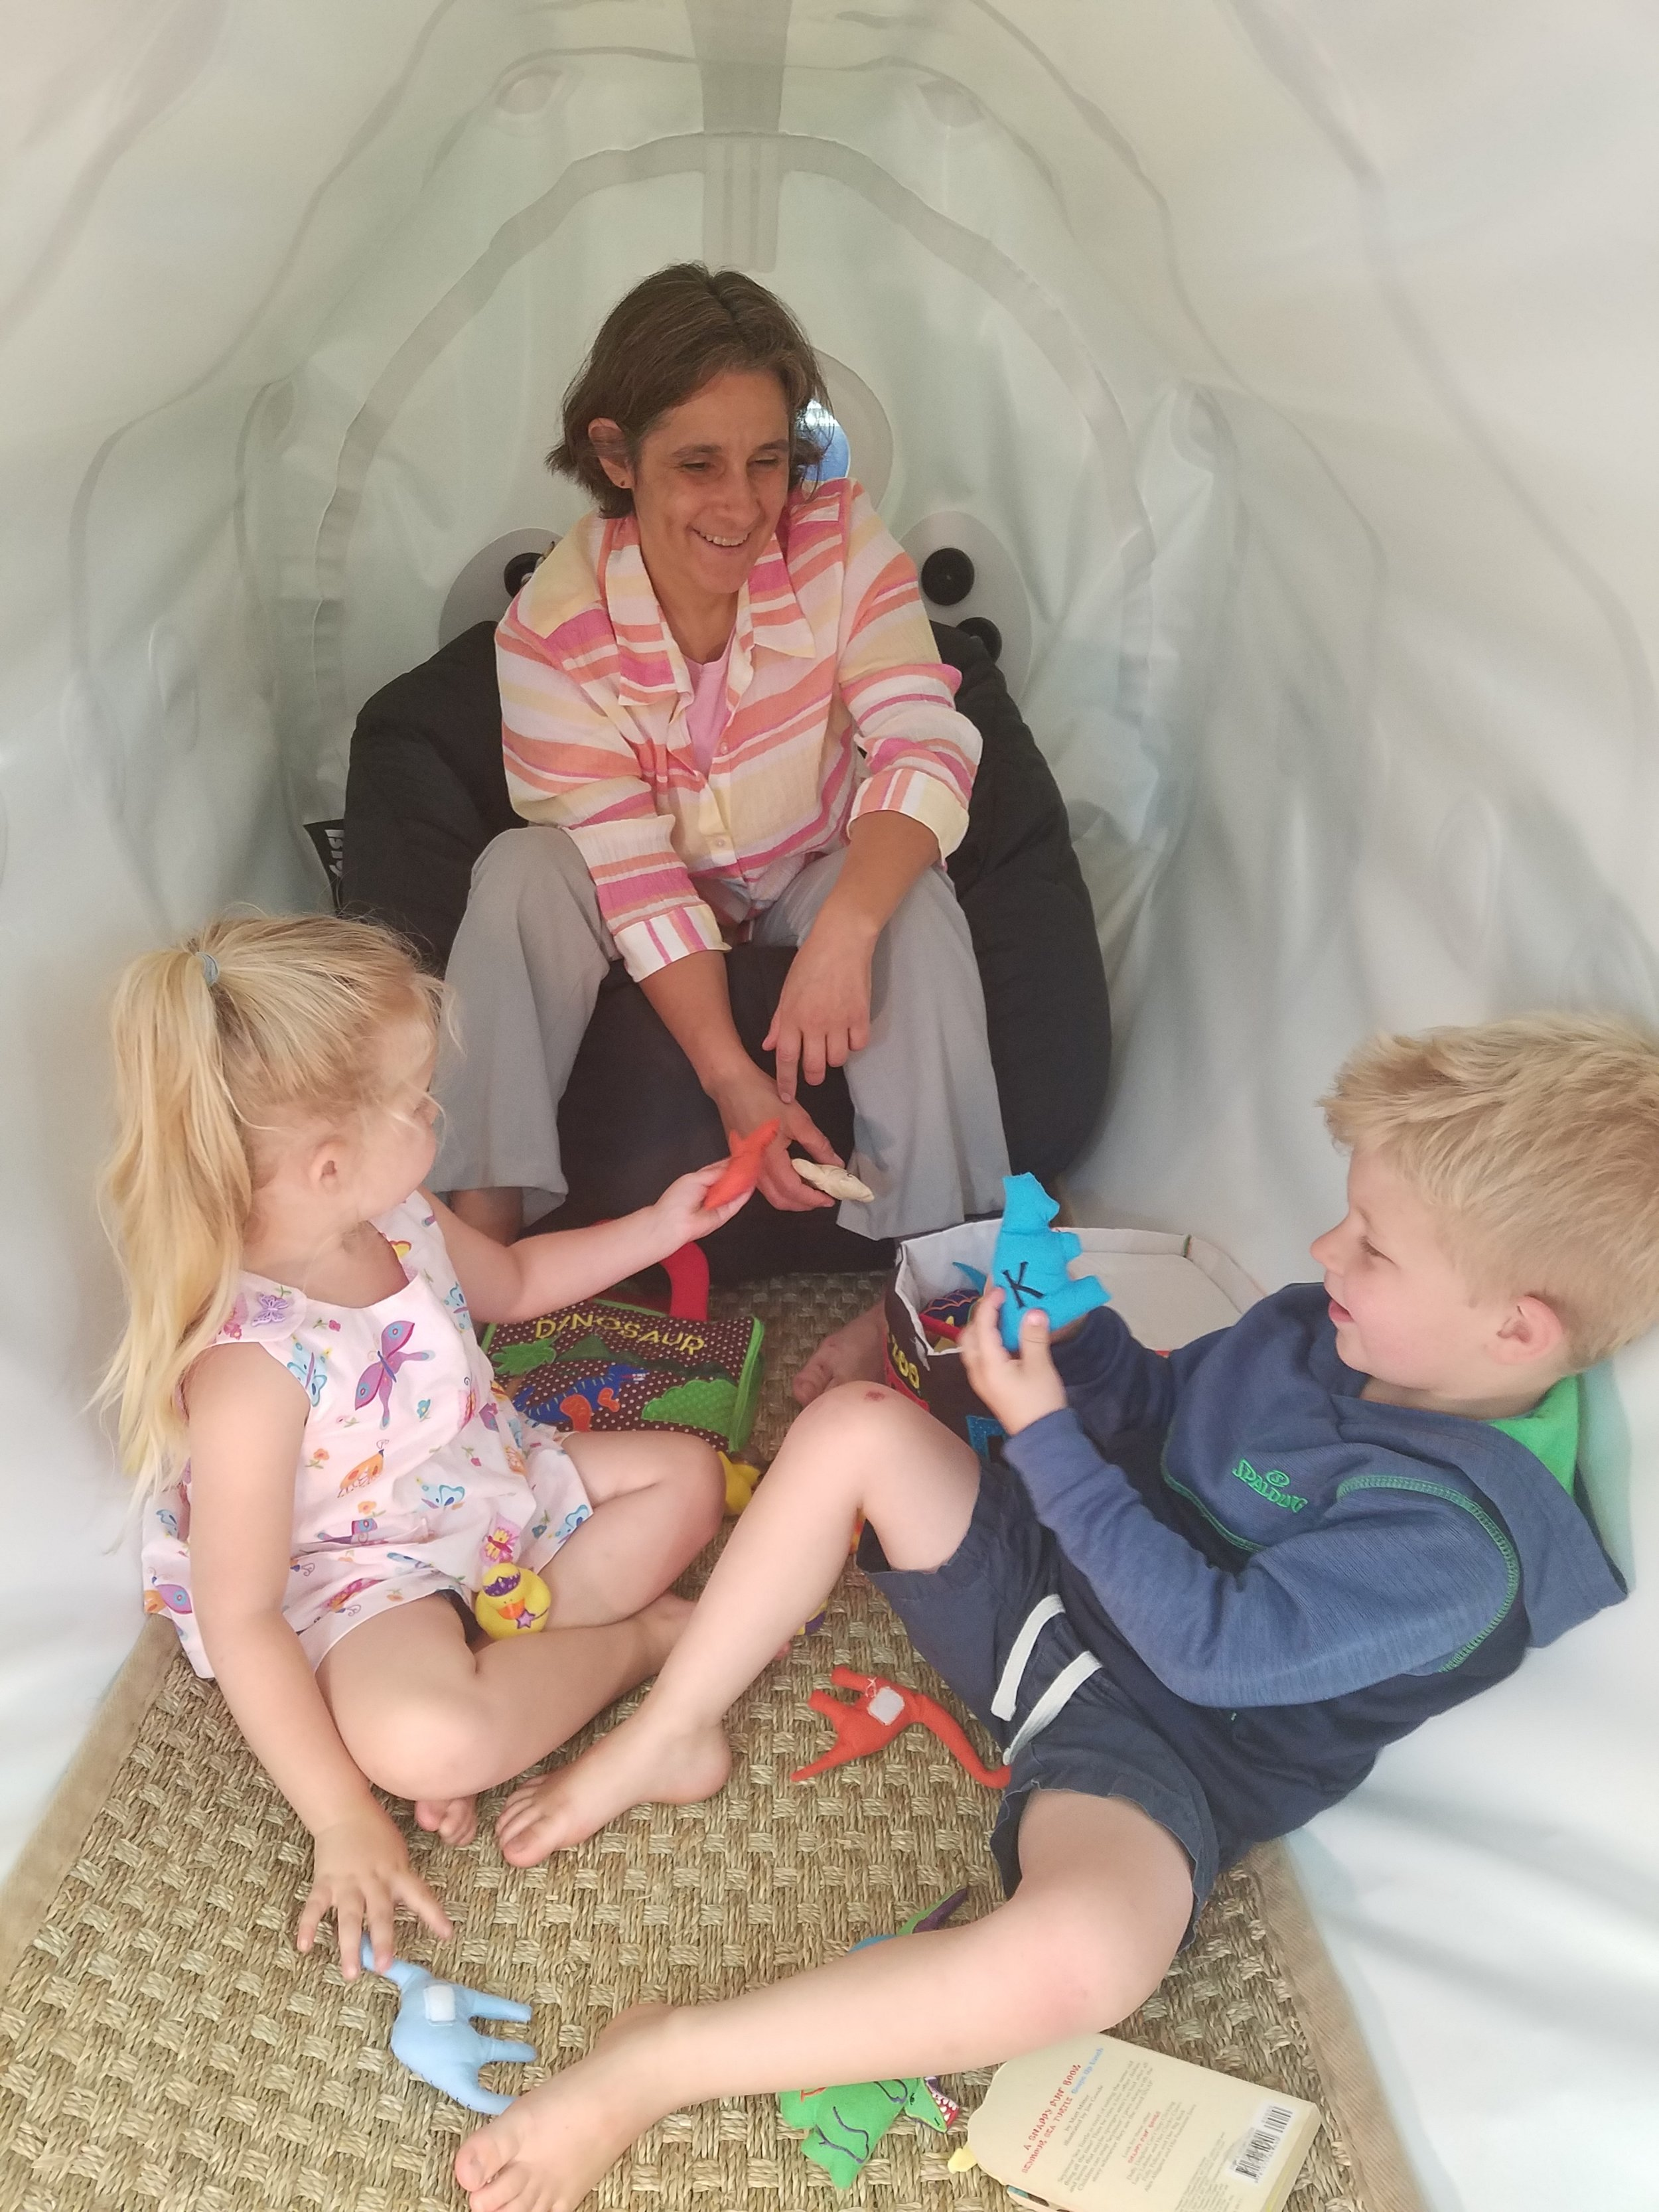 Hyperbaric medicine is safe for adults and kids